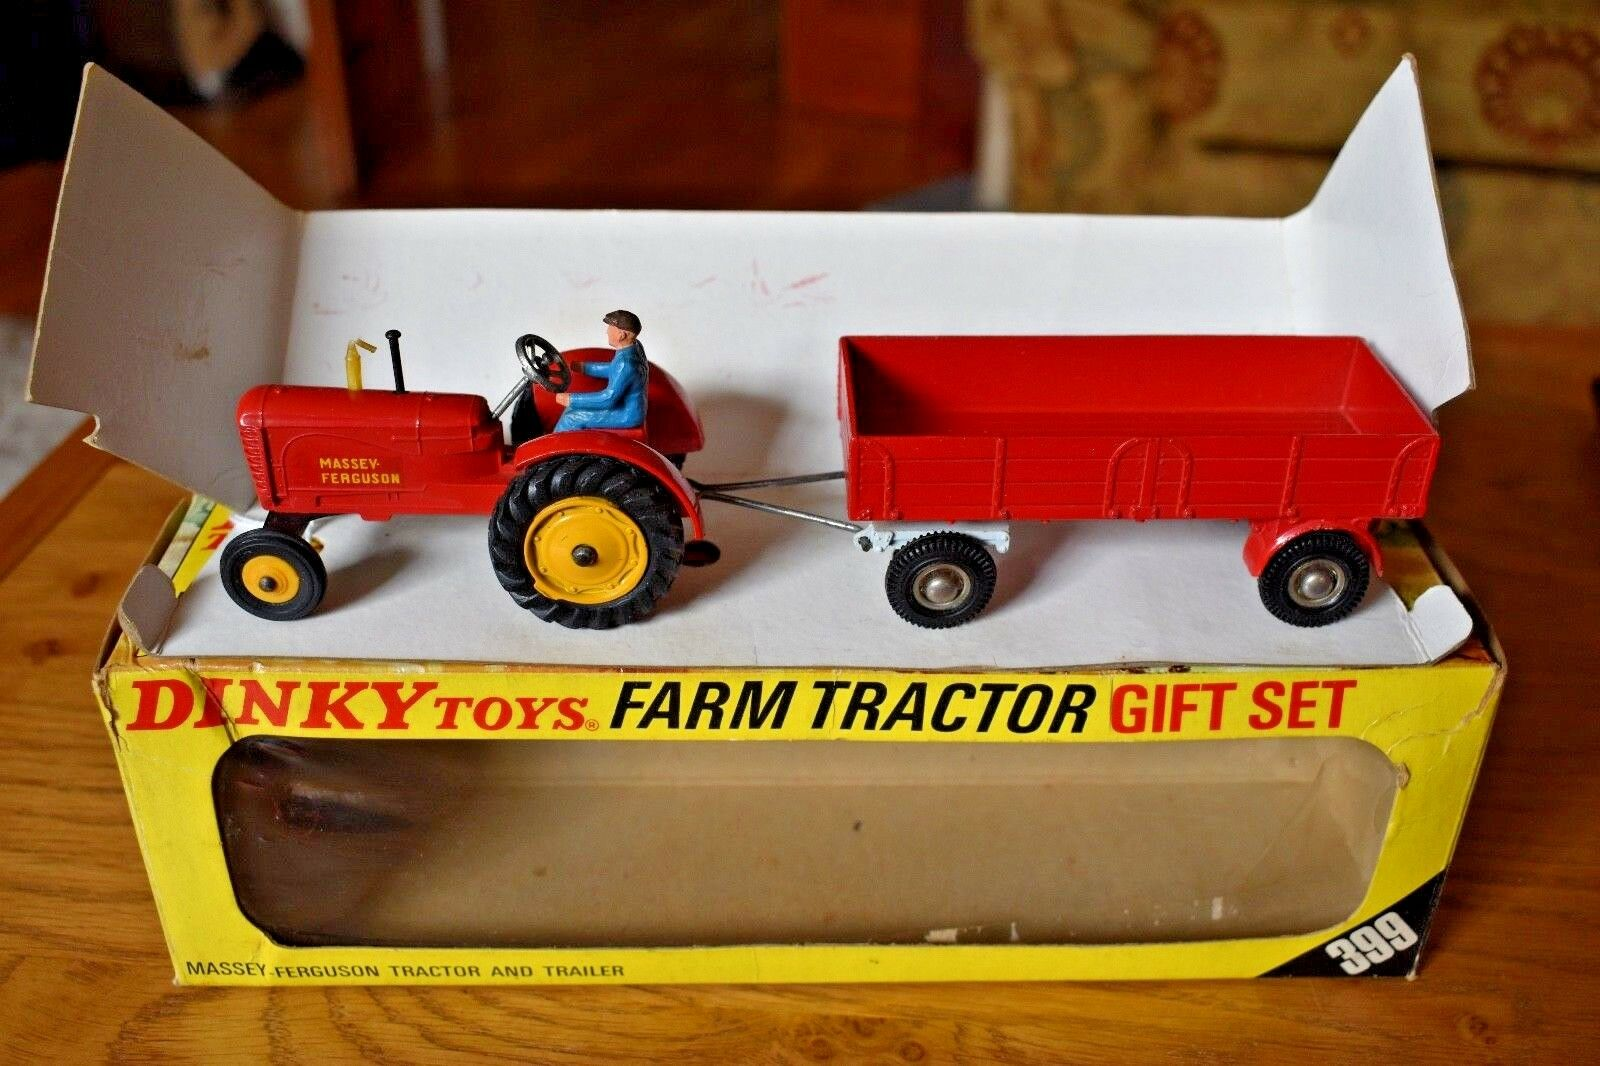 Dinky Toys Farm Tractor and Trailer Gift Set; 399; Original Box; Massey Ferguson